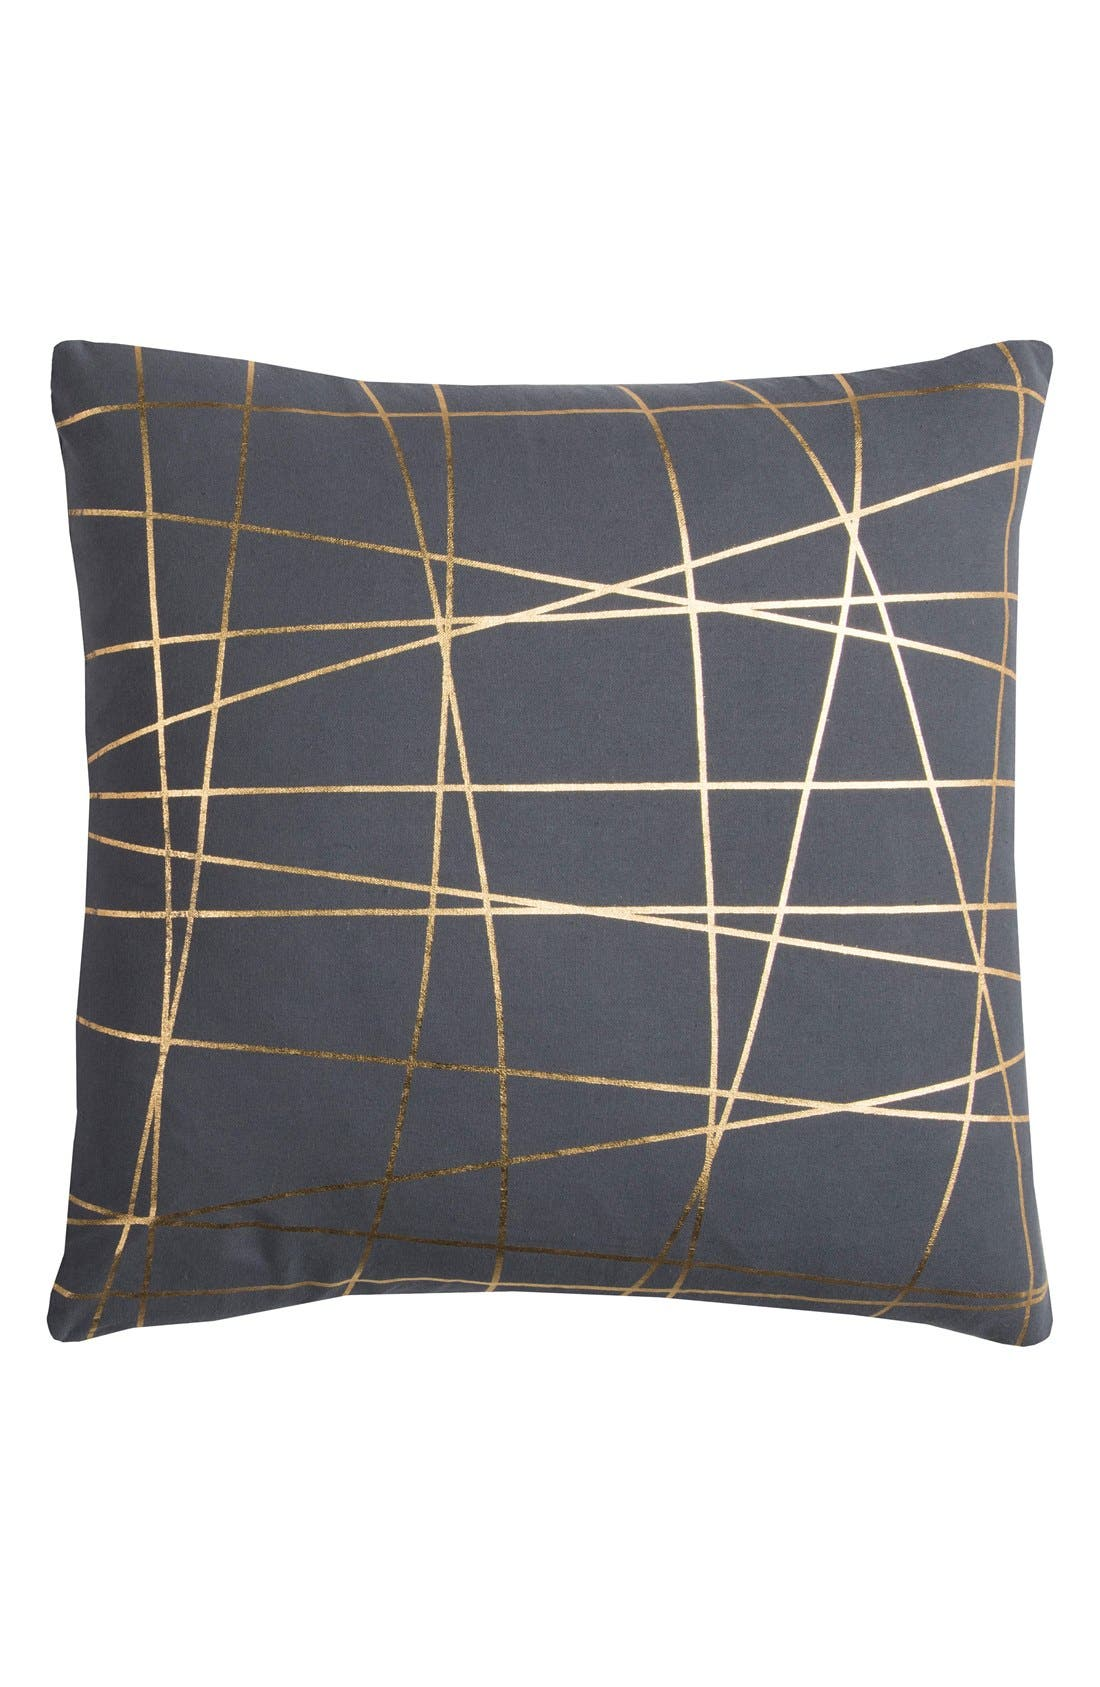 Rizzy Home Metallic Lines Accent Pillow